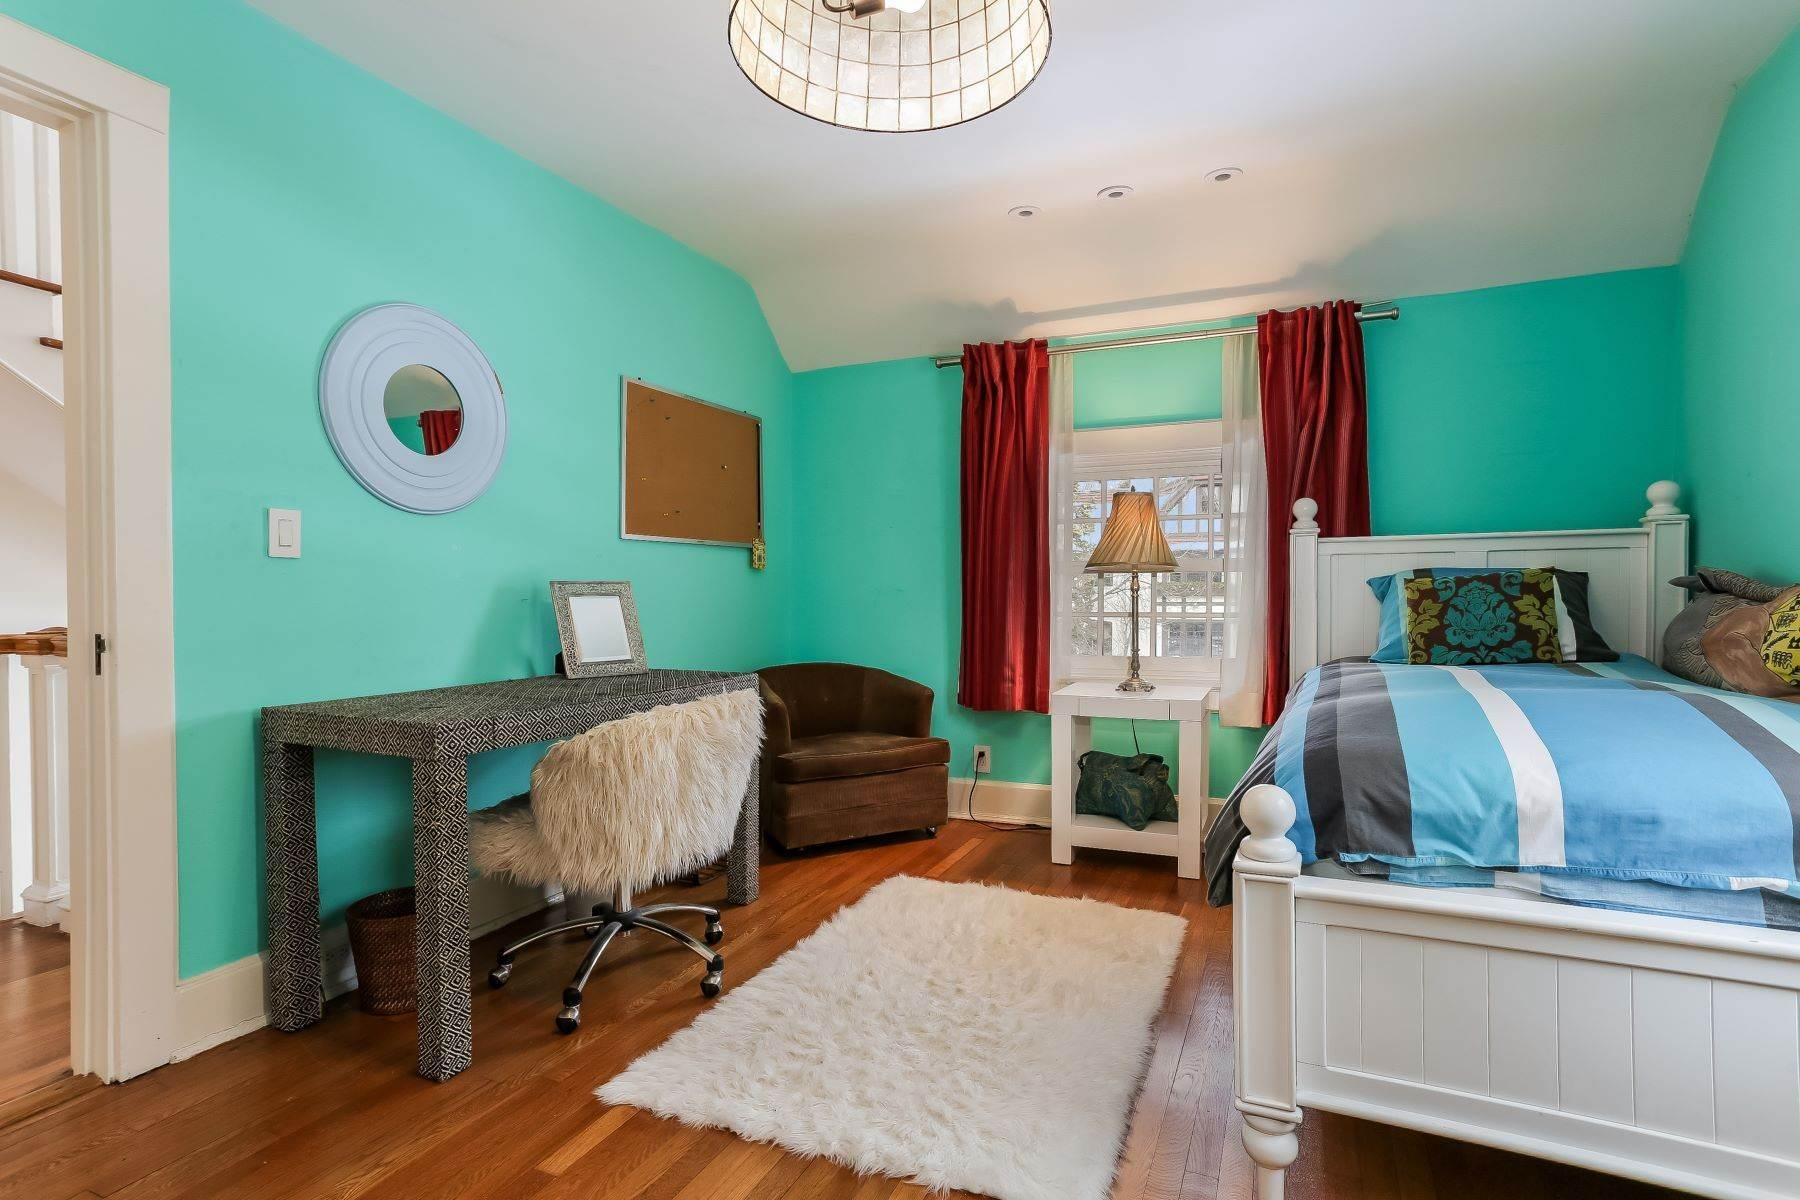 24. Single Family Homes for Sale at 'SPACIOUS STORYBOOK HOME, FULLY RENOVATED' 19 Groton Street, Forest Hills Gardens, Forest Hills, New York 11375 United States